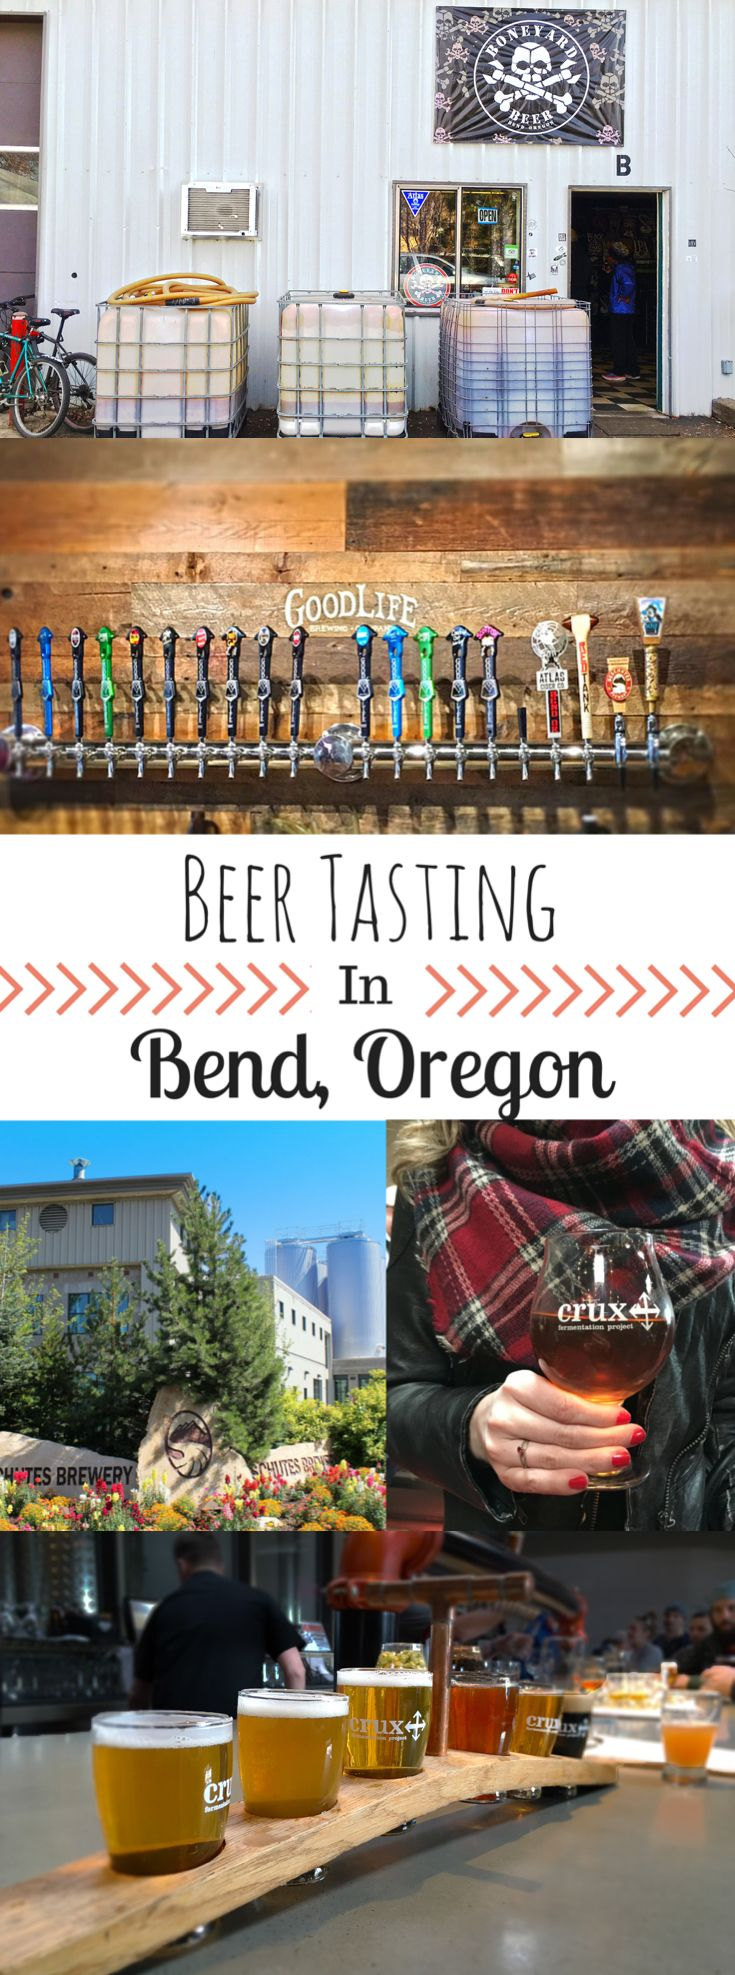 If you love #Beer, go here: Bend, Oregon.